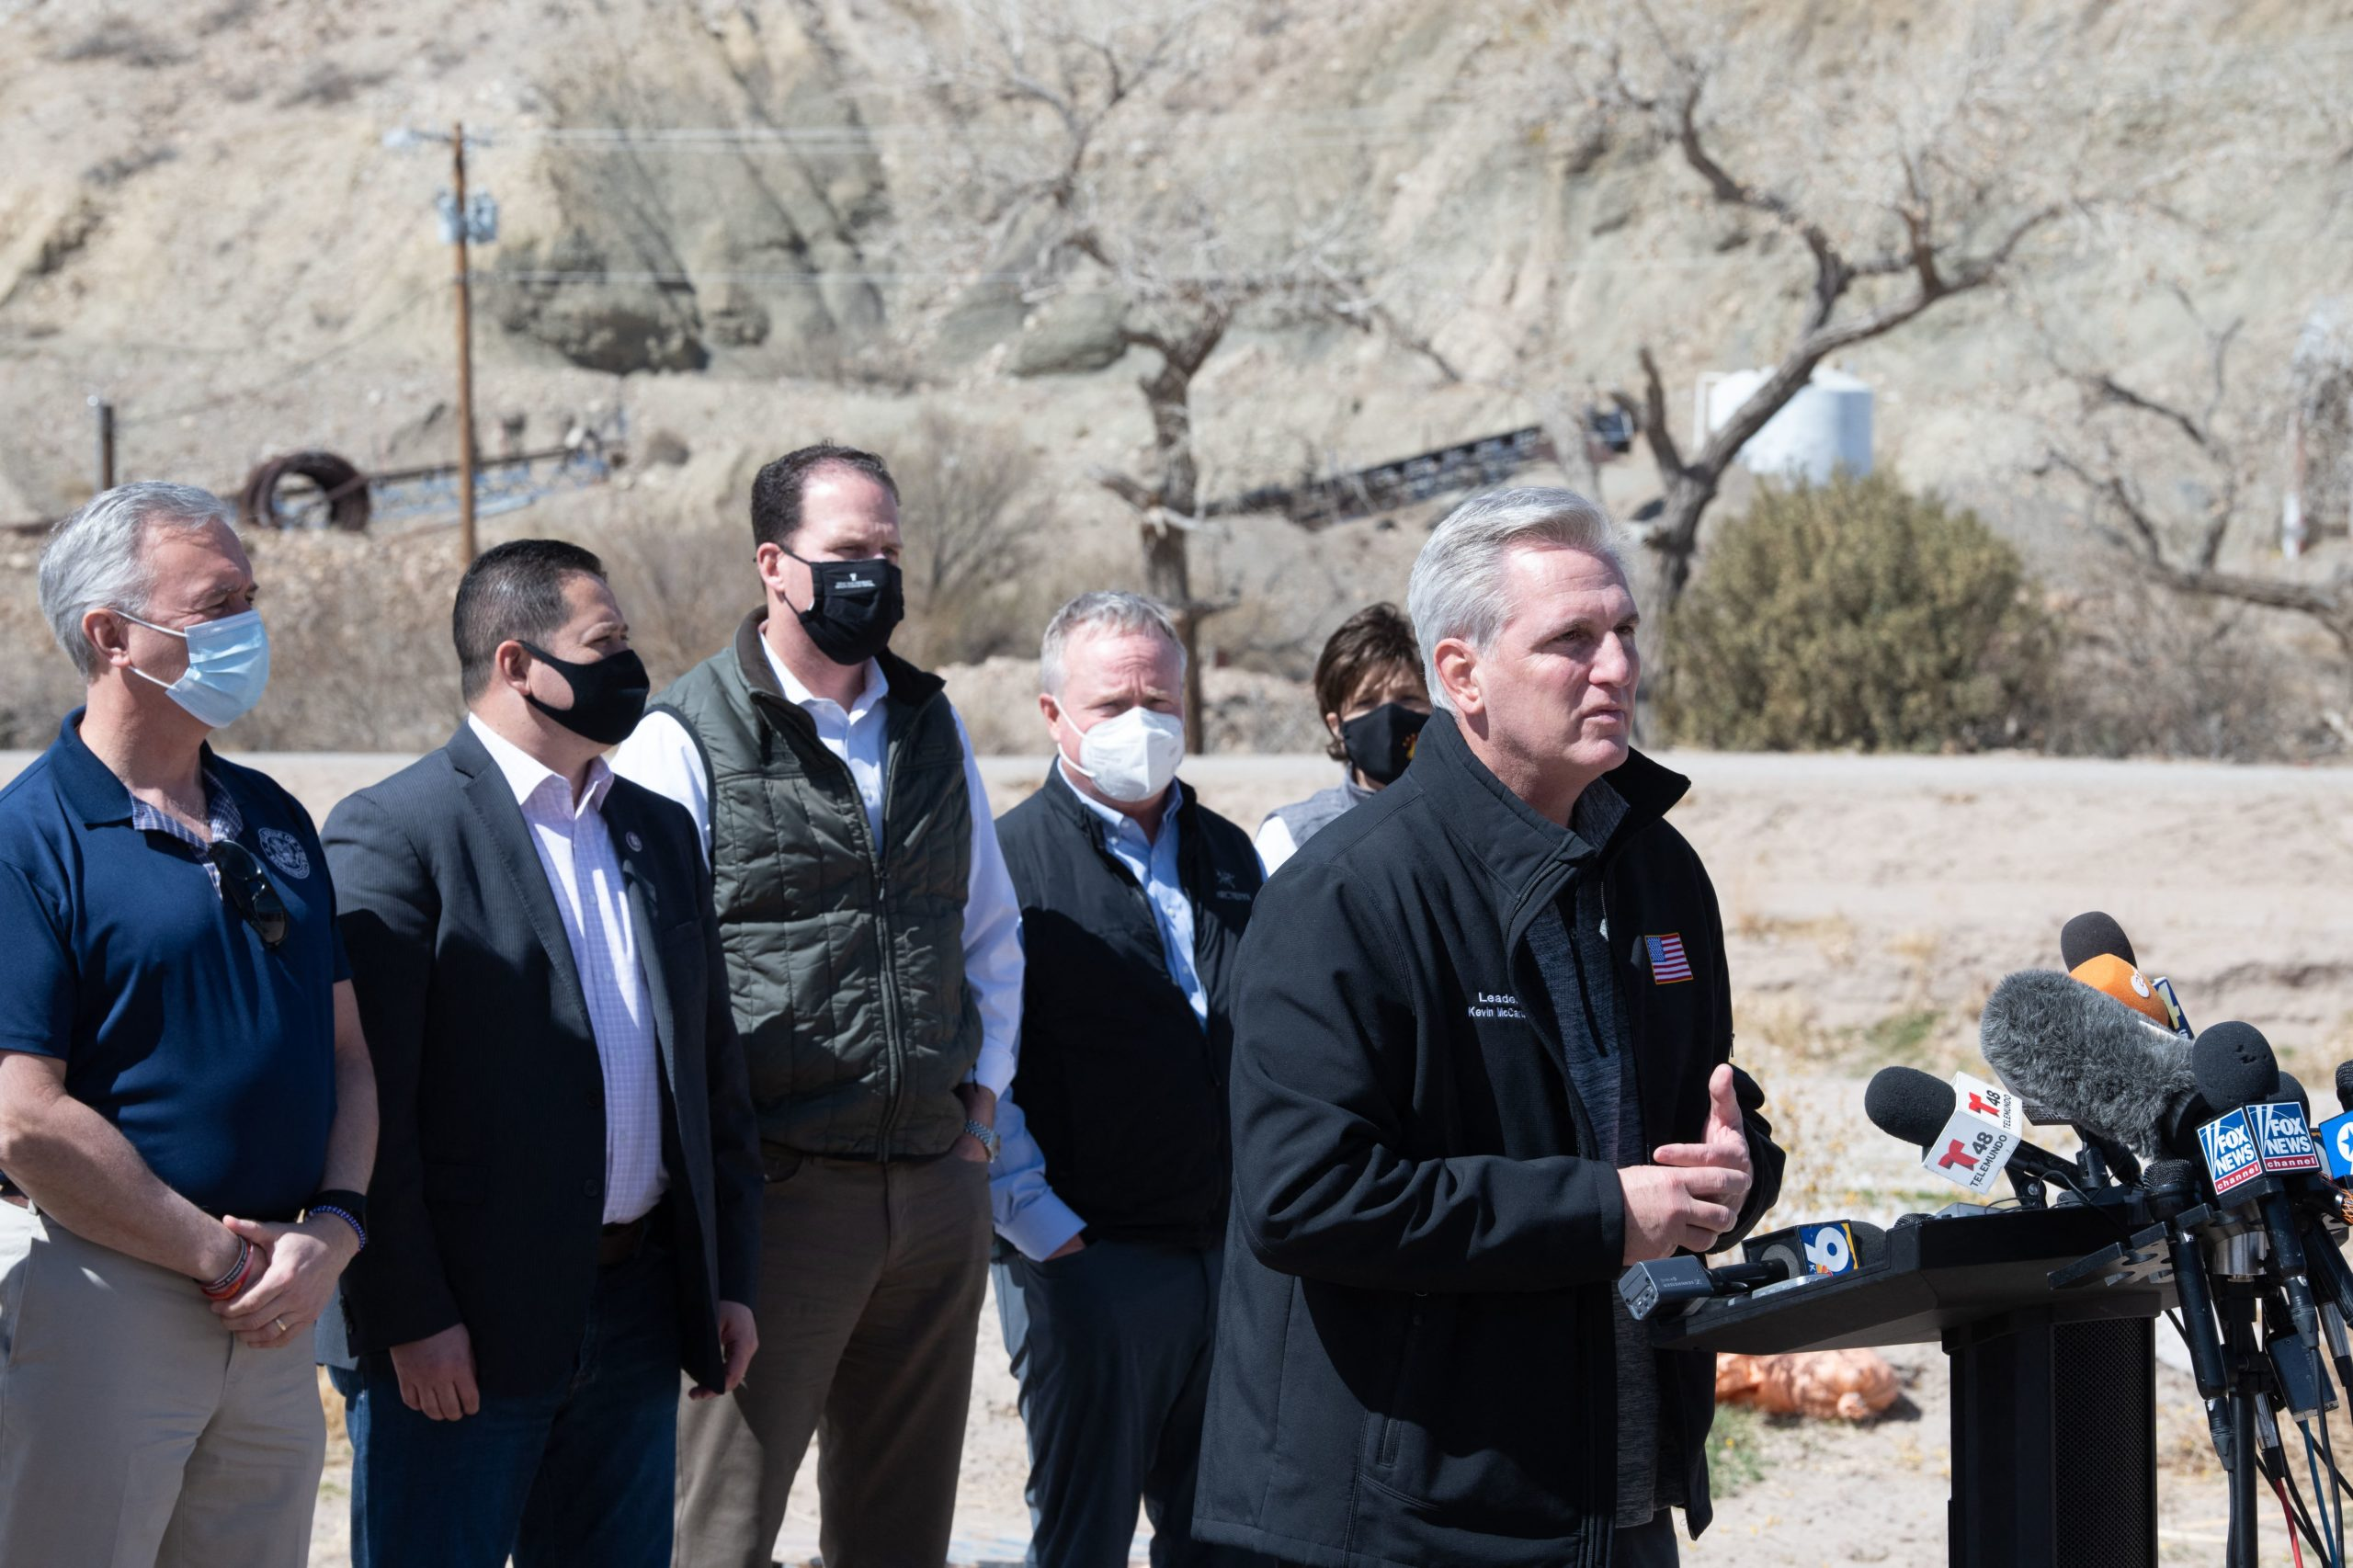 House Minority Leader Kevin McCarthy addresses the press during the congressional border delegation visit to El Paso, Texas on March 15, 2021. (JUSTIN HAMEL/AFP via Getty Images)